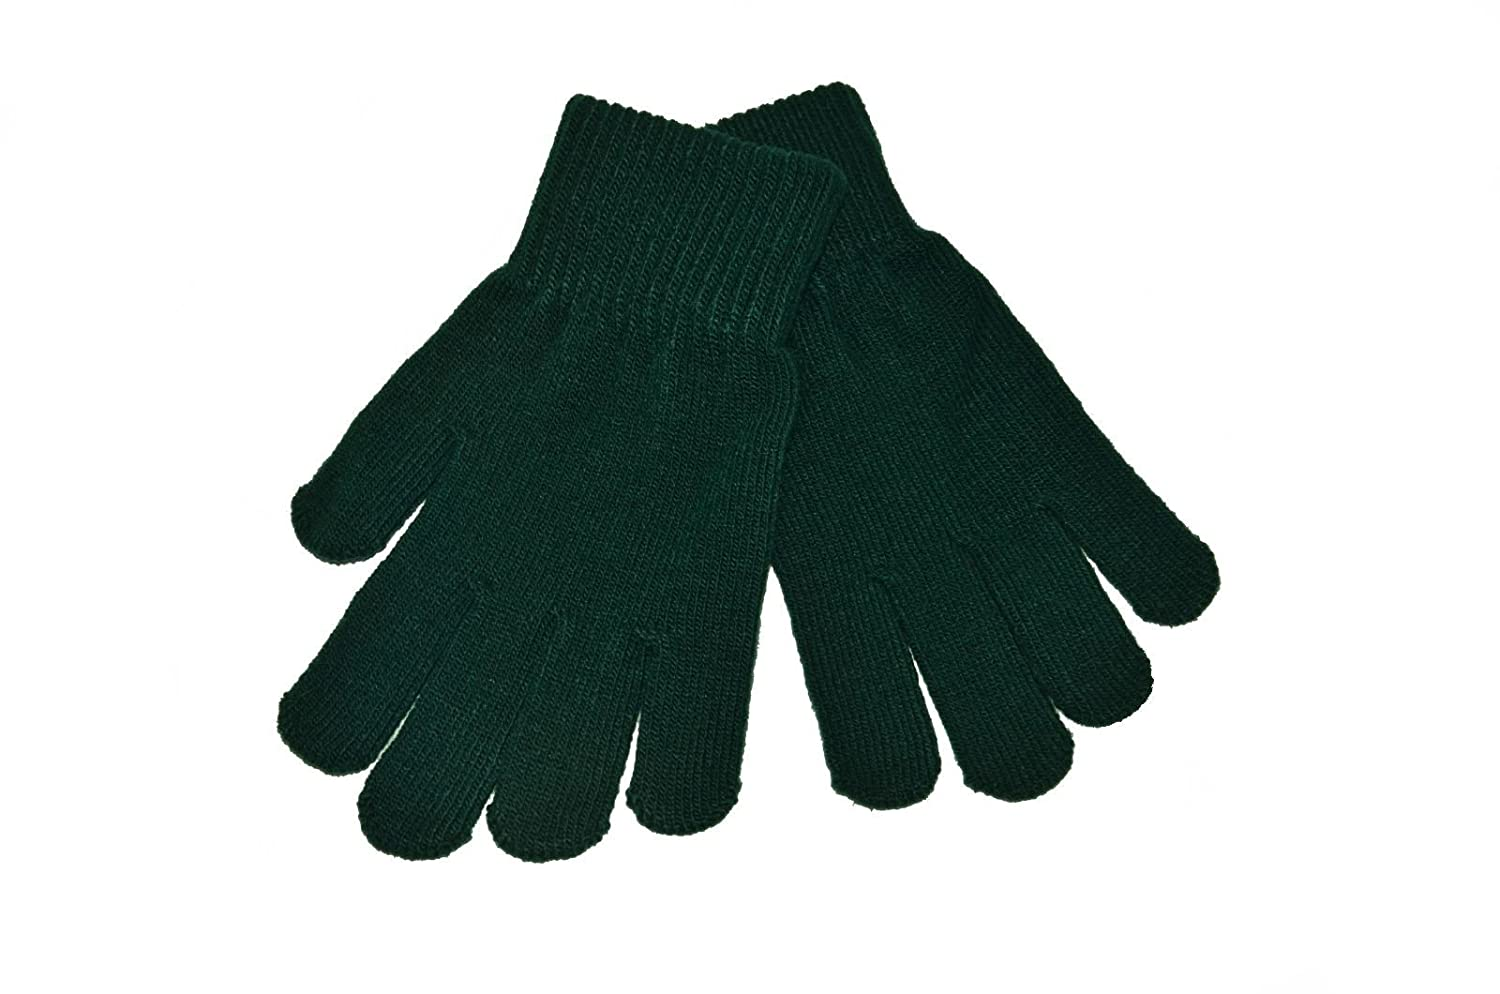 Childs Knitted Stretch Gloves, Black, 3/7 years